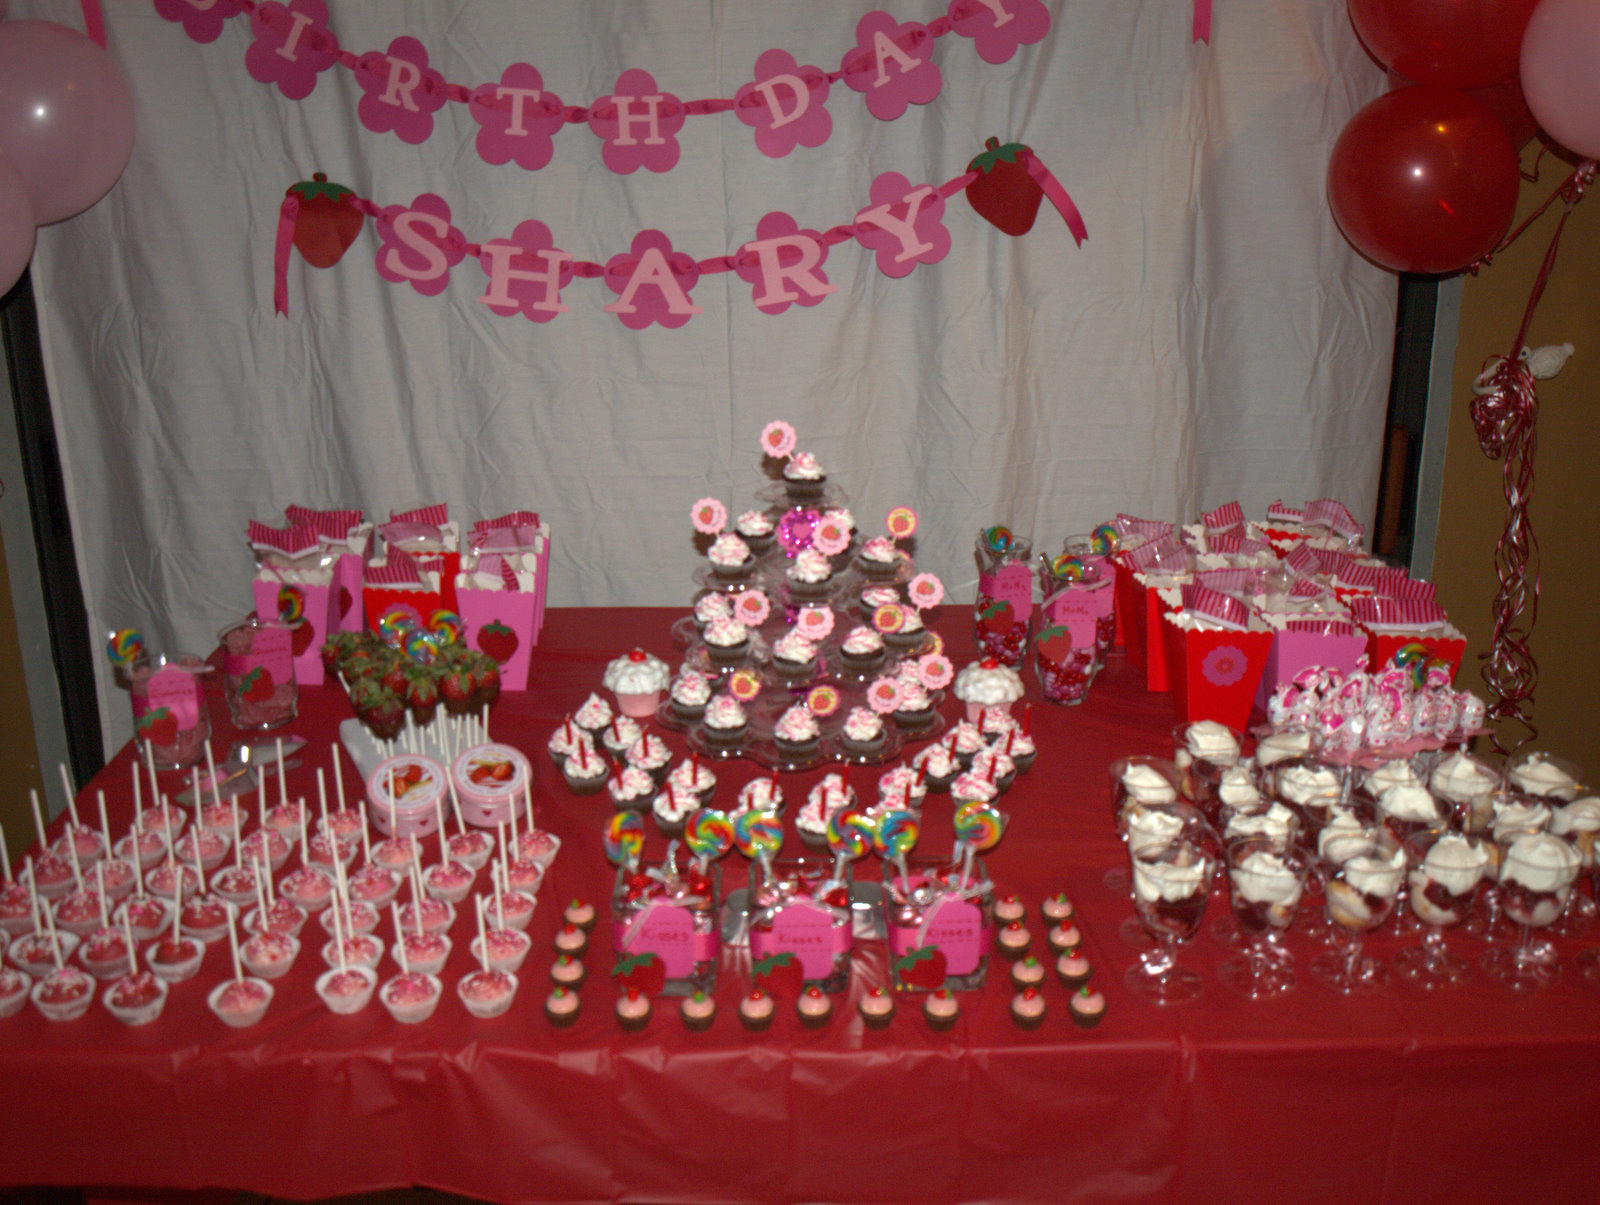 18th birthday party decorations party favors ideas for 18th birthday decoration